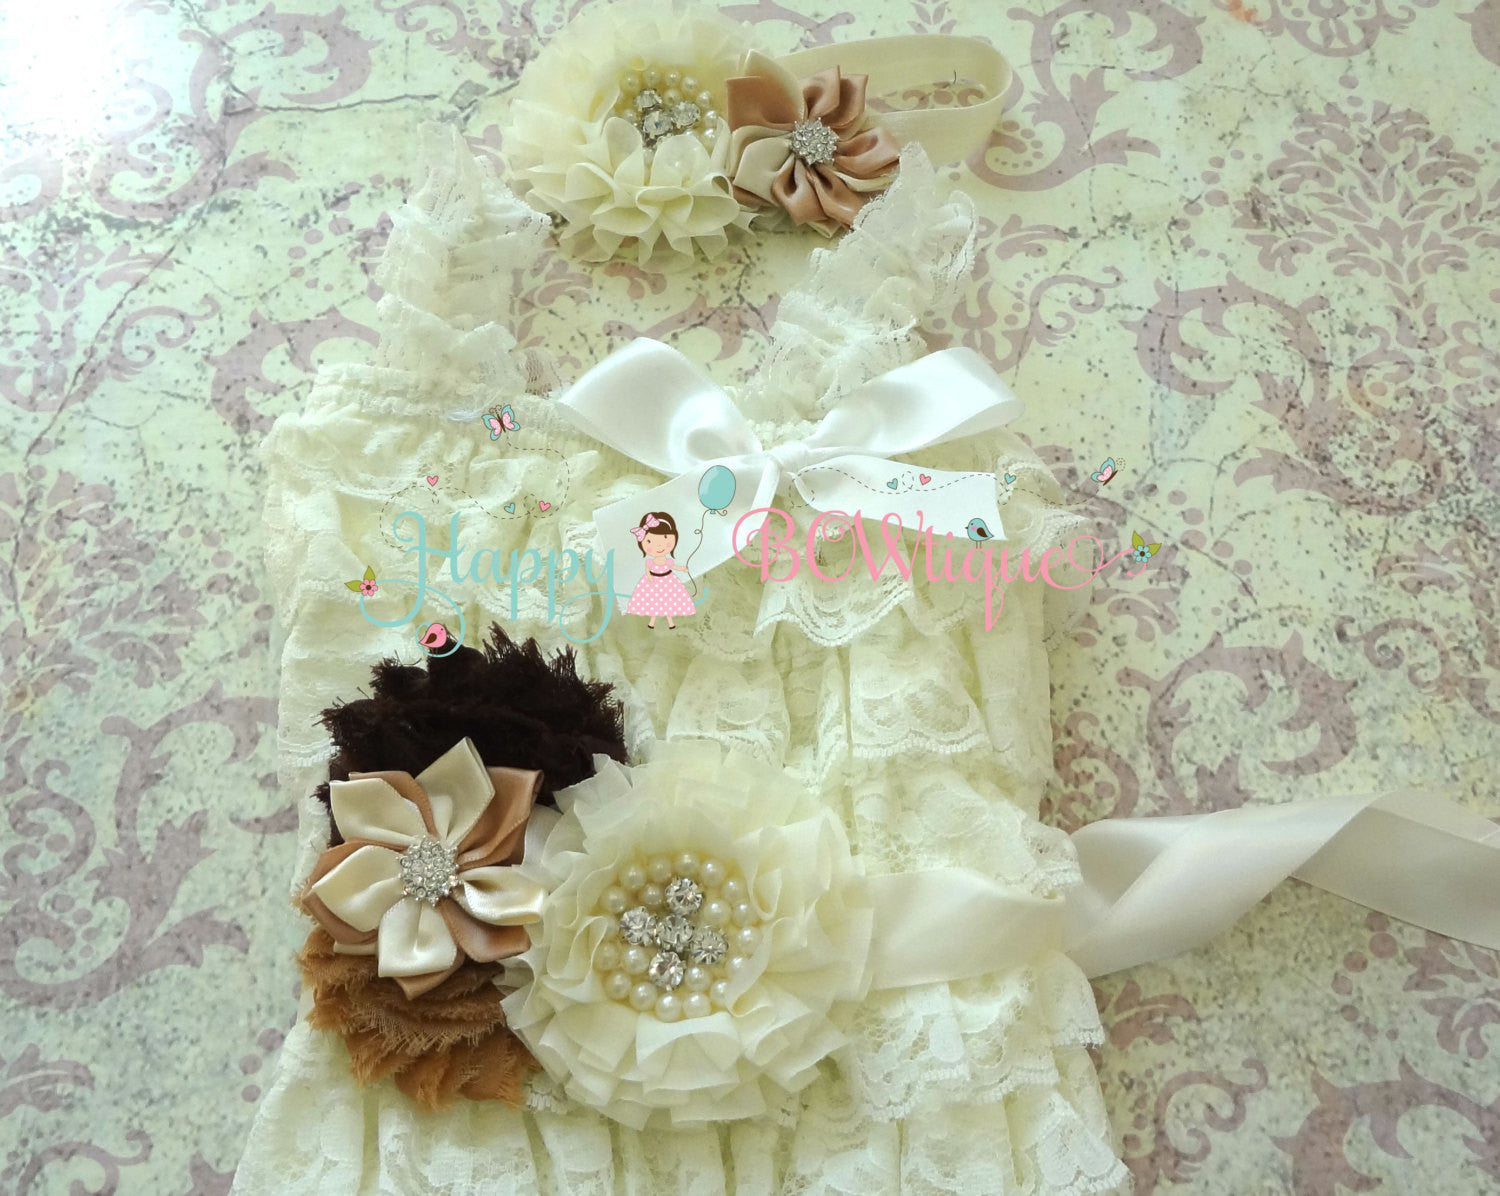 Rustic Ivory Tan Lace Romper Set, - Happy BOWtique - children's clothing, Baby Girl clothing